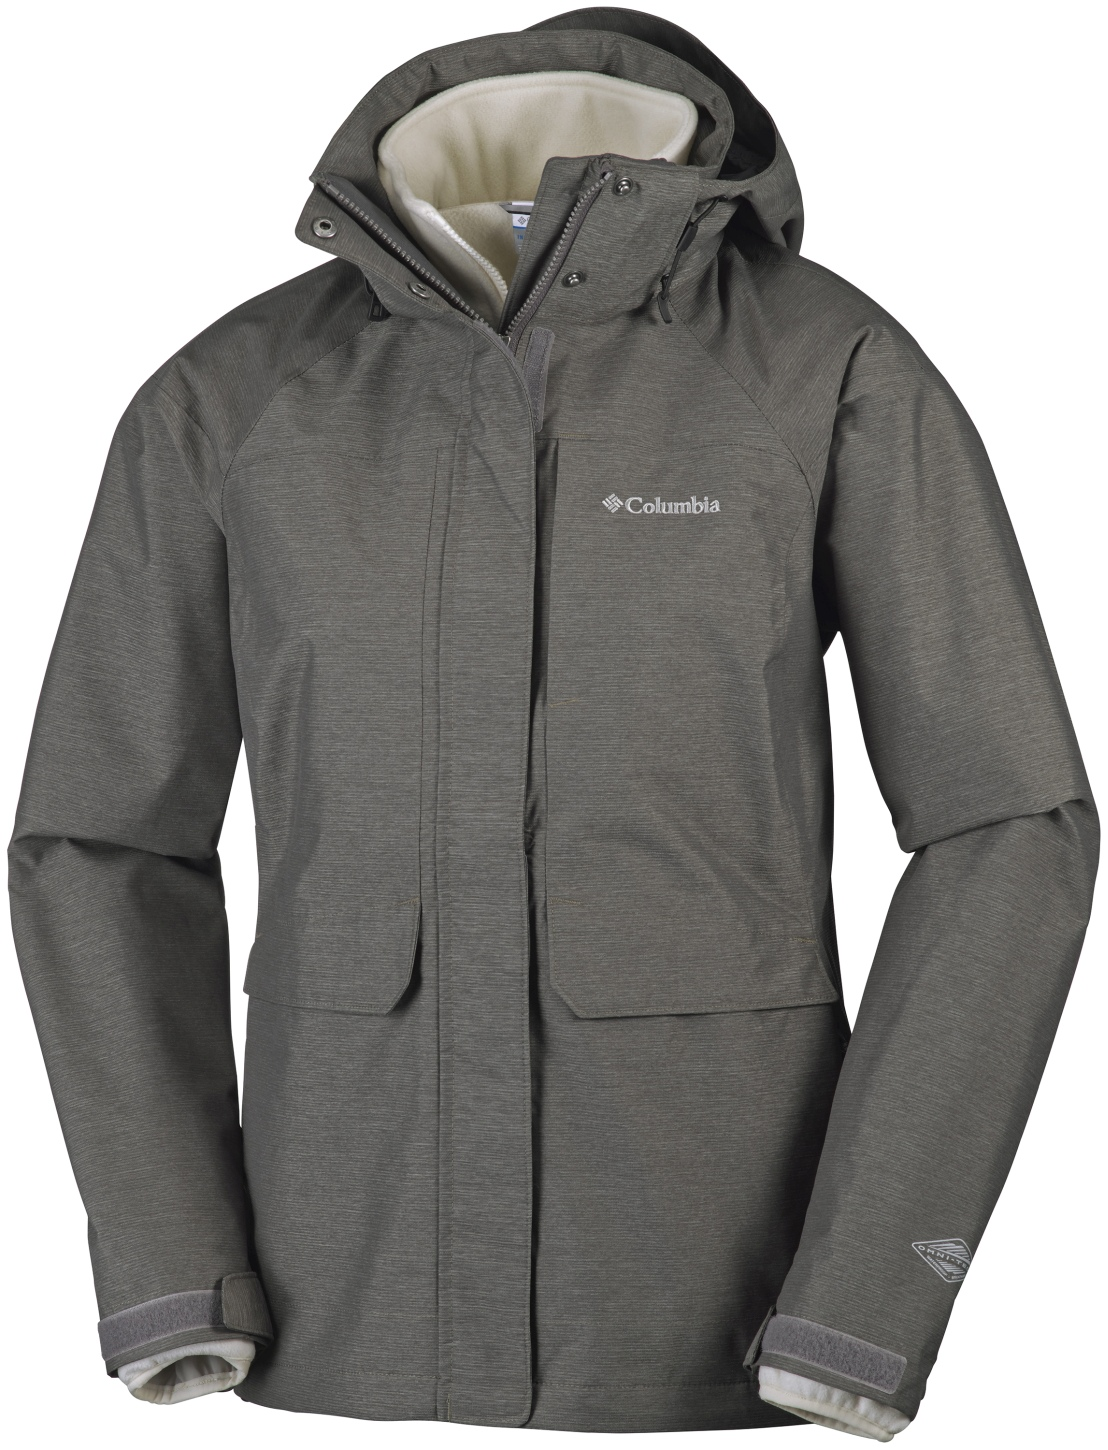 Columbia Mystic Pines Variable Ski-Jacke für Damen Mineshaft Cross Dye-30